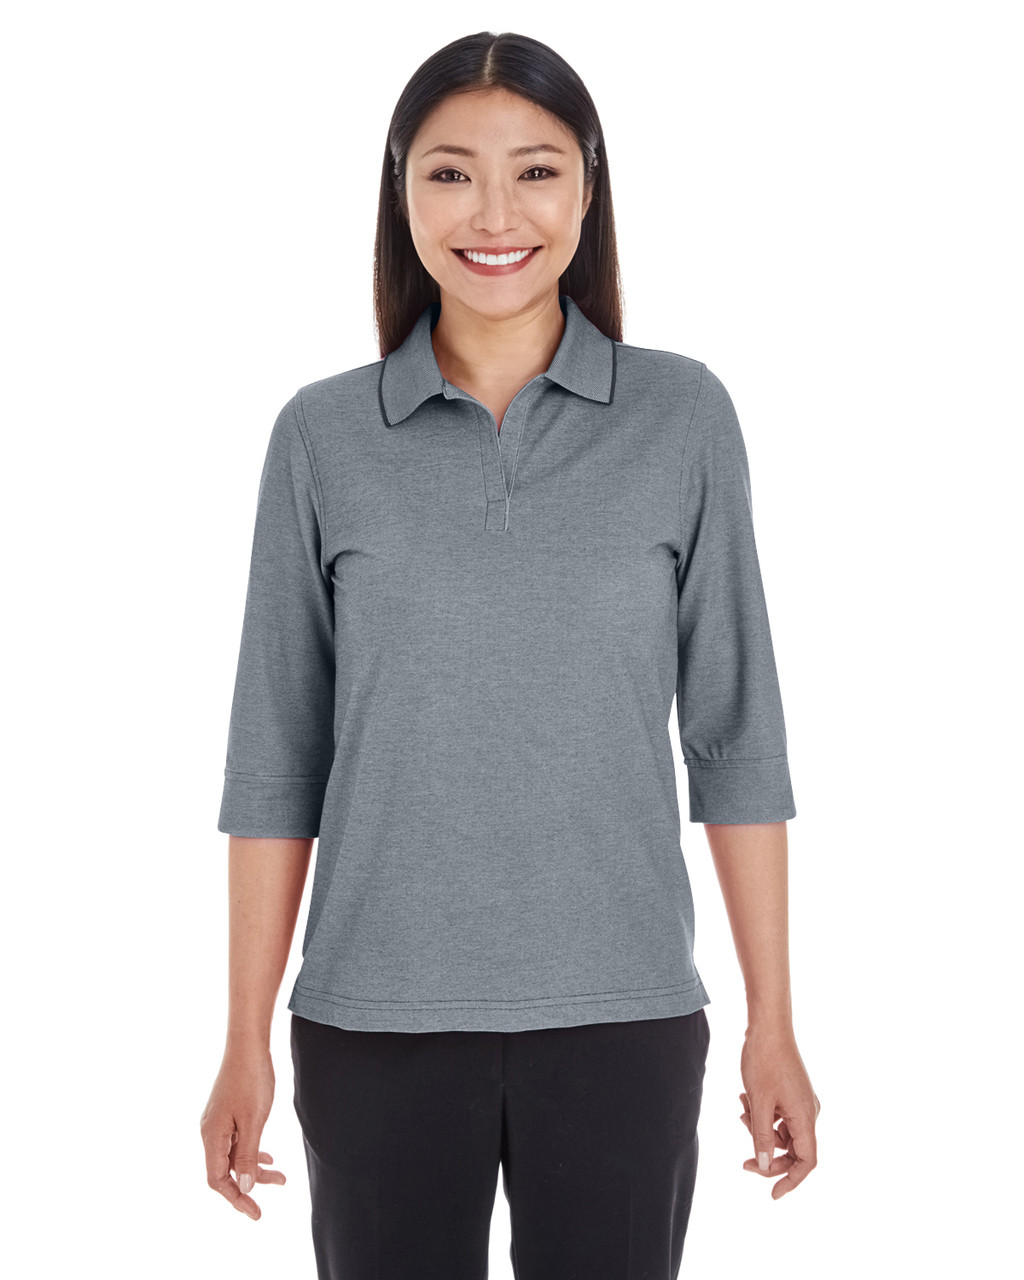 Navy Heather - DG220W Devon & Jones Ladies' Pima-Tech™ Oxford Piqué Polo Shirt | Blankclothing.ca